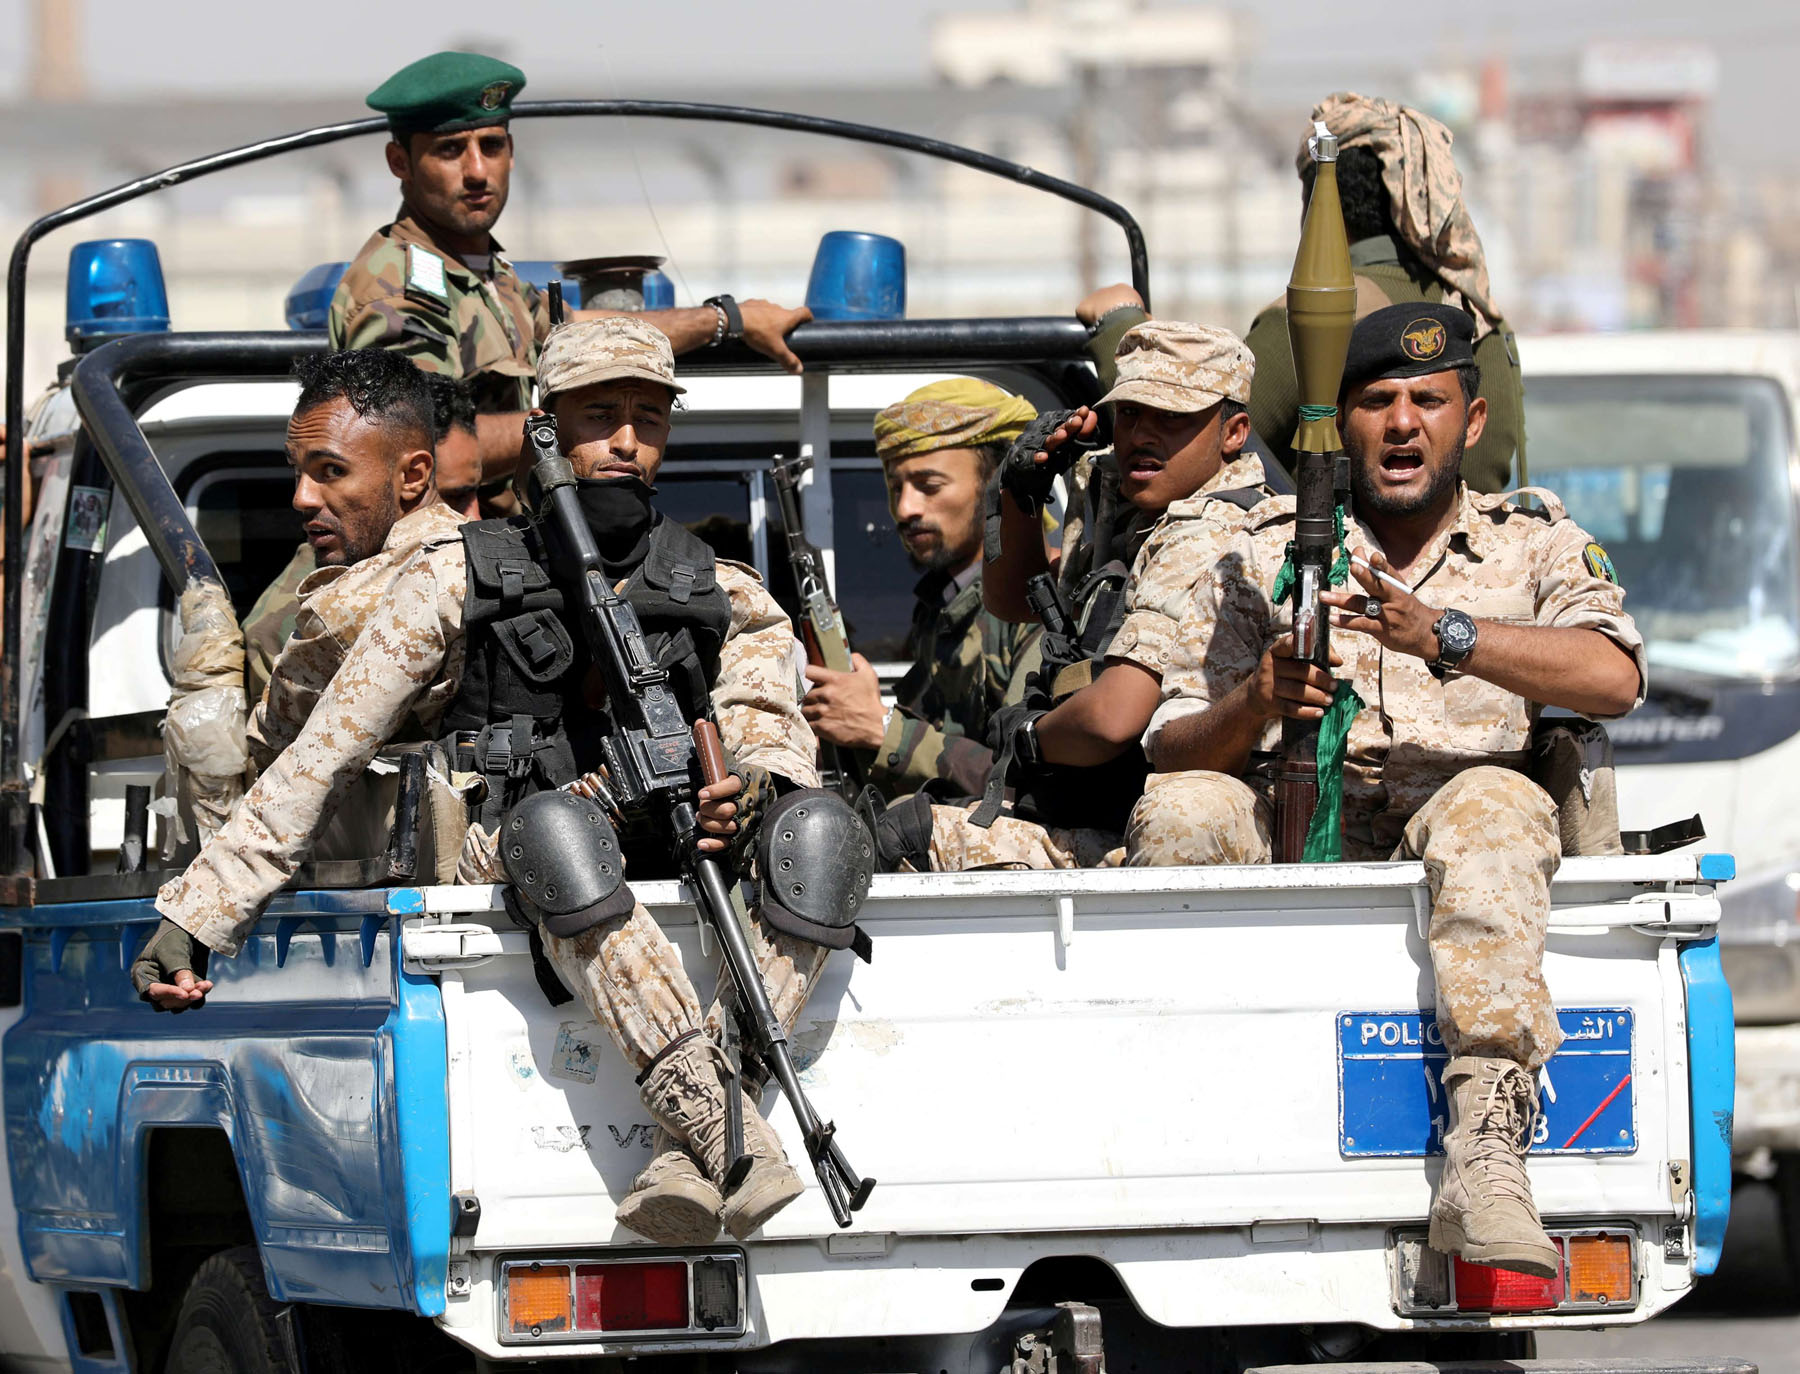 A file picture of Houthi troops riding on the back of a police patrol truck in Sana'a. (REUTERS)